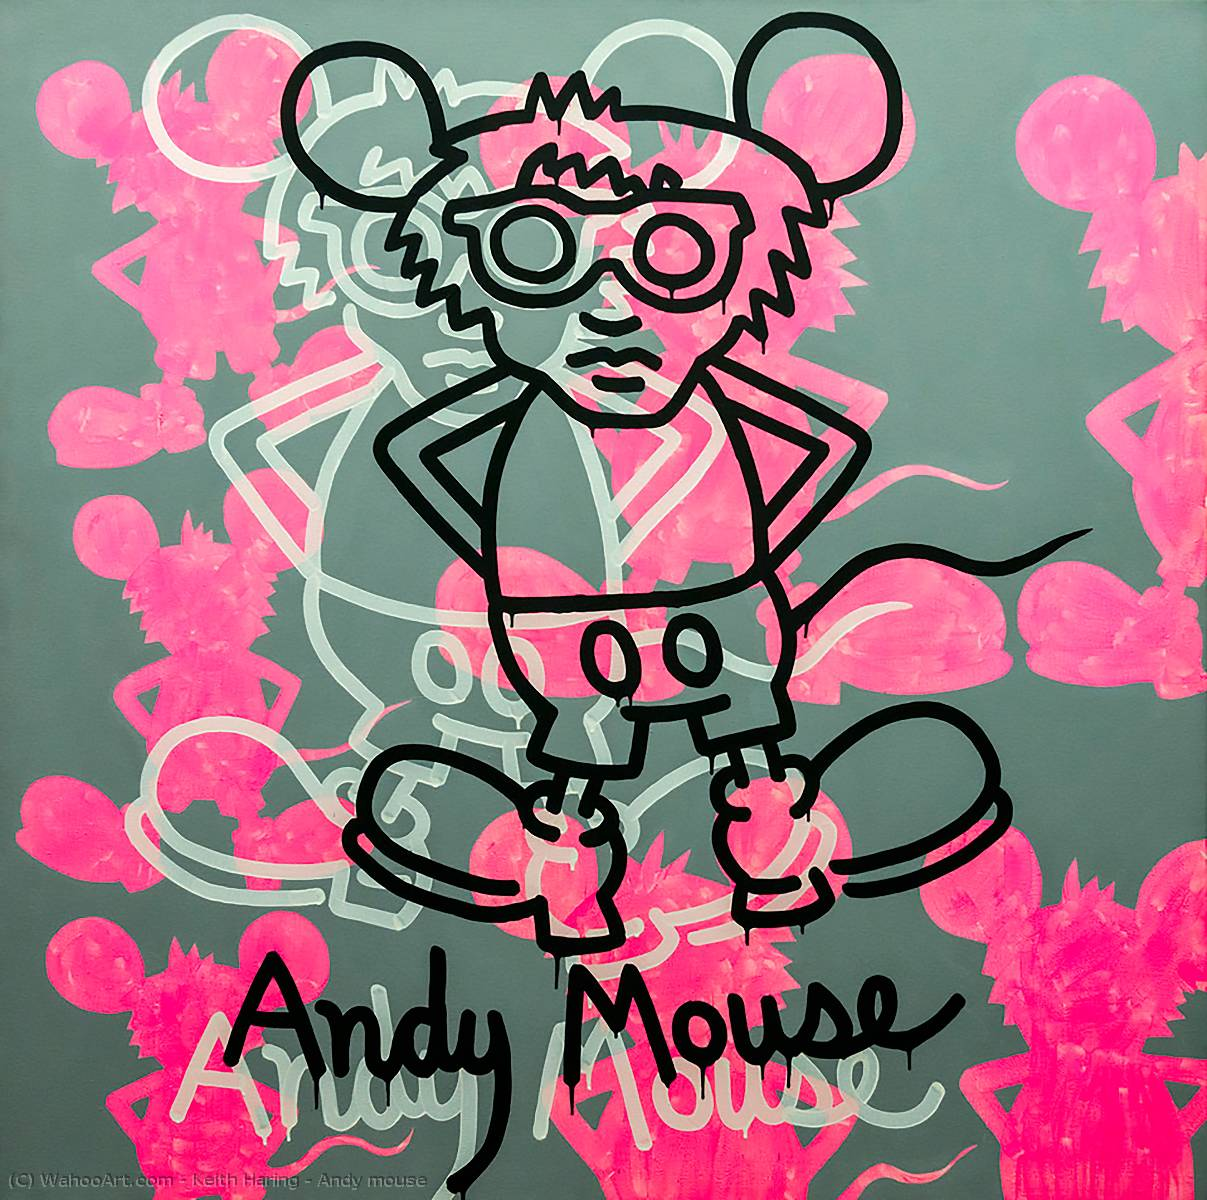 famous painting Andy maus of Keith Haring